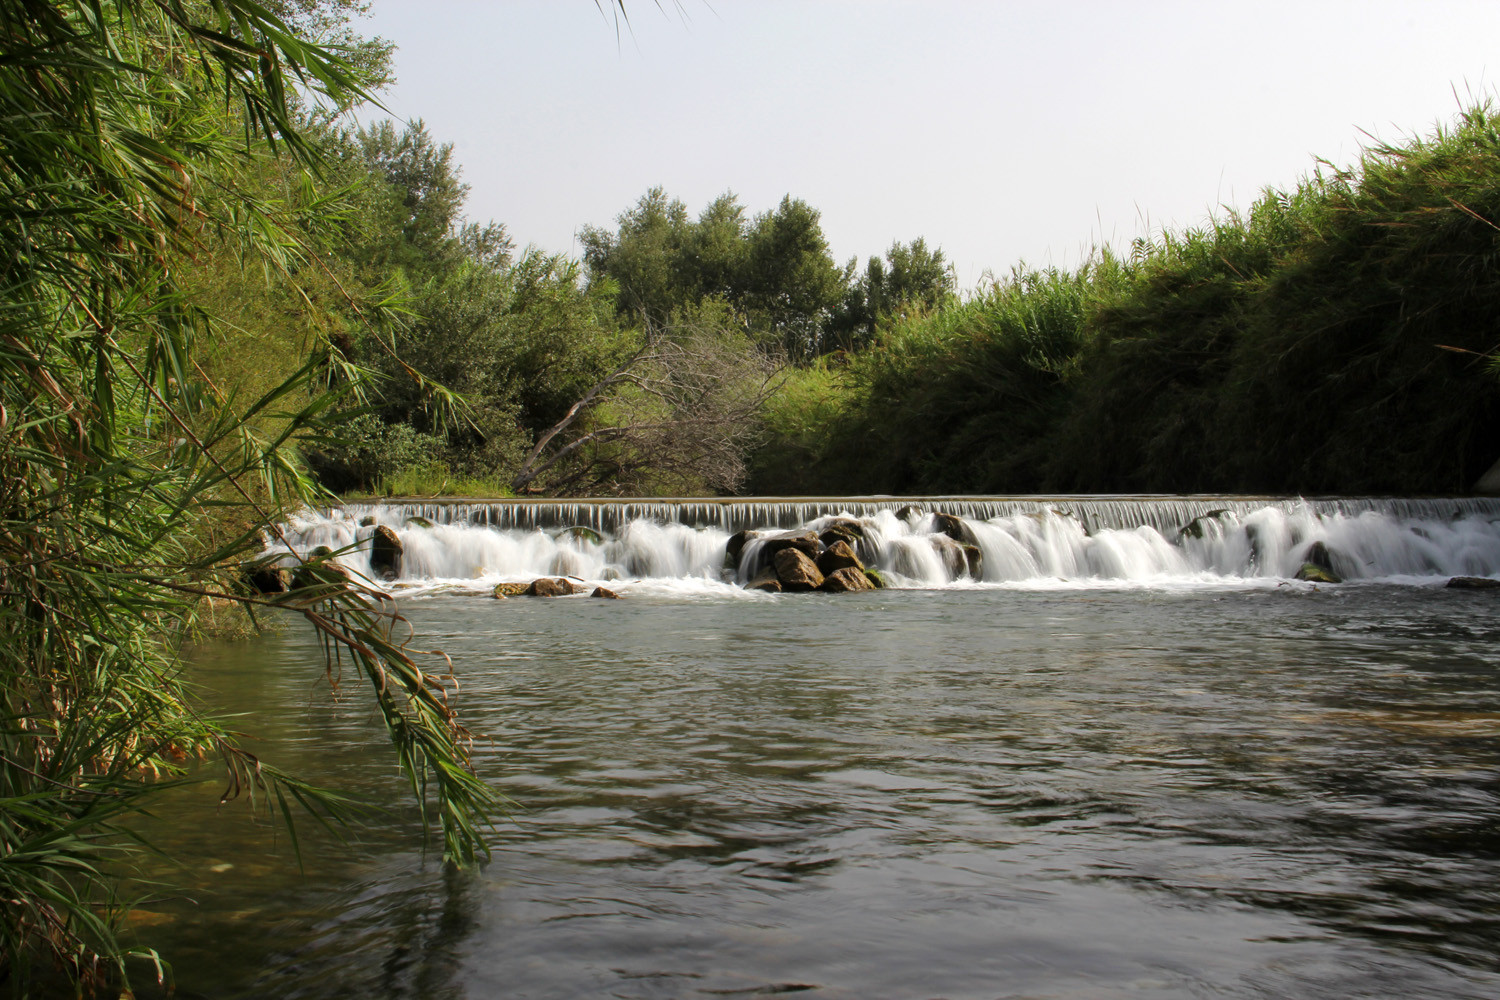 Waterfall in the River Río Guadalfeo